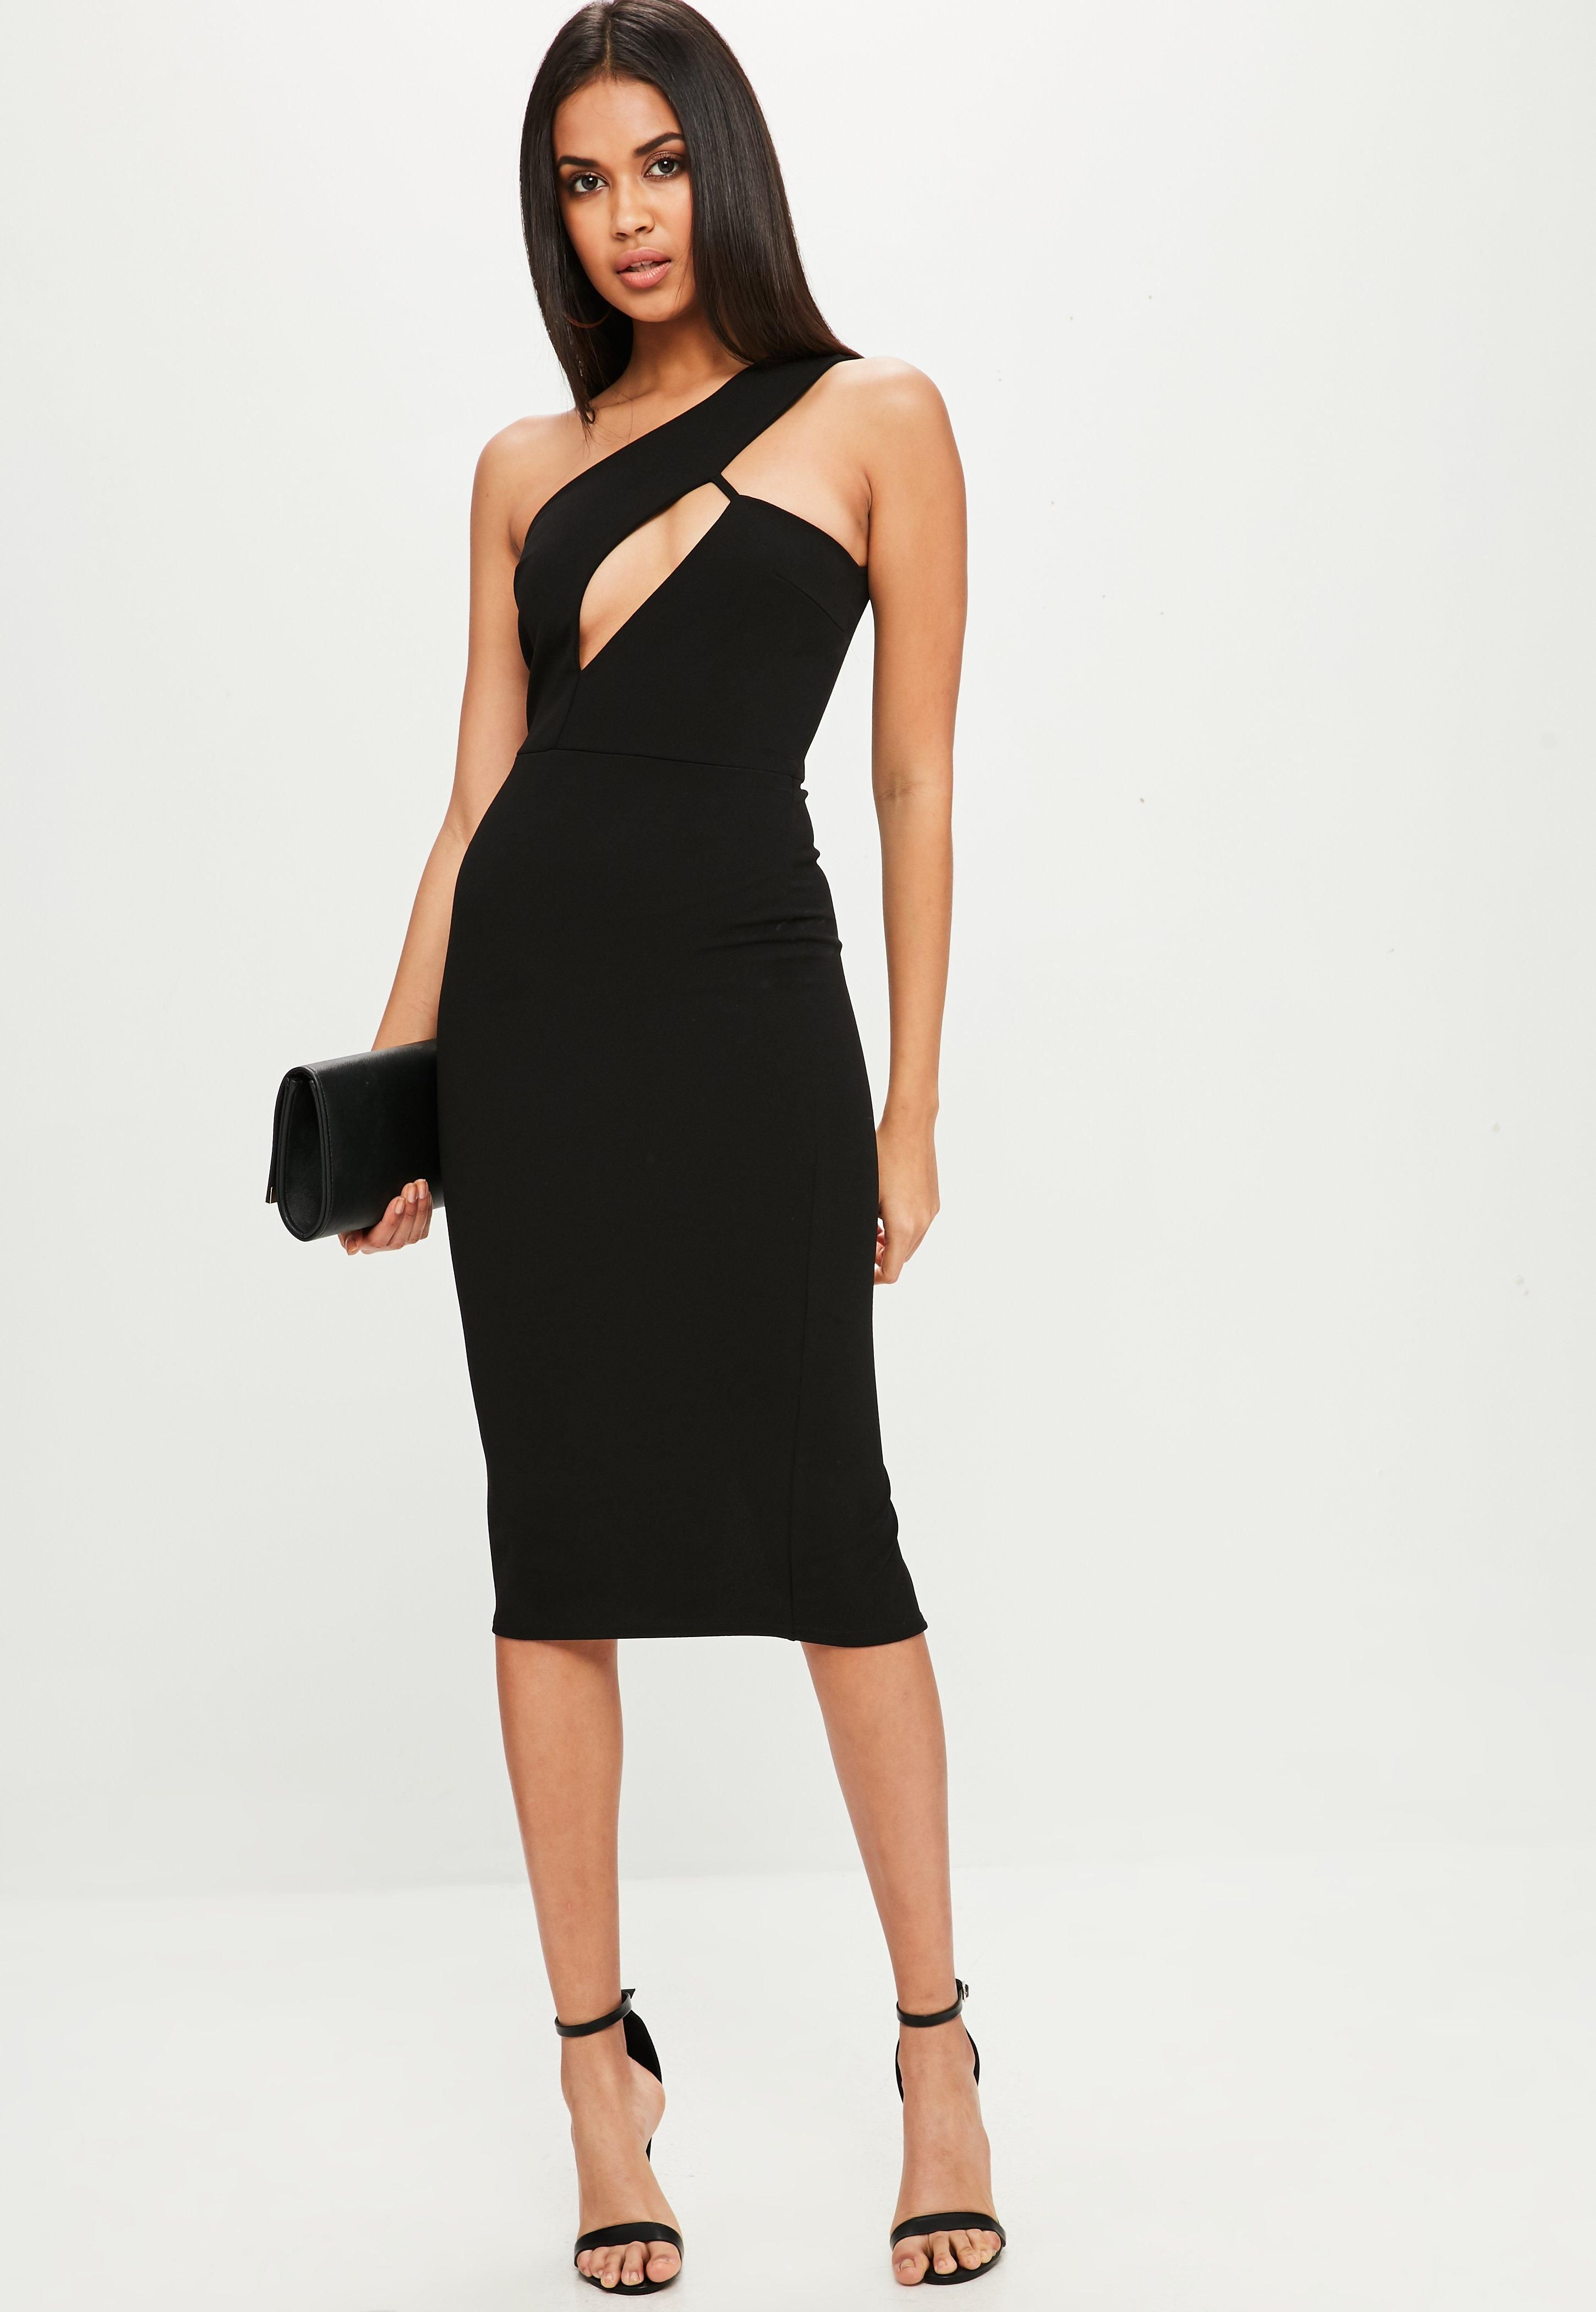 475309a70c46 Black dress with a cut out detailing, one shoulder style and midi length.